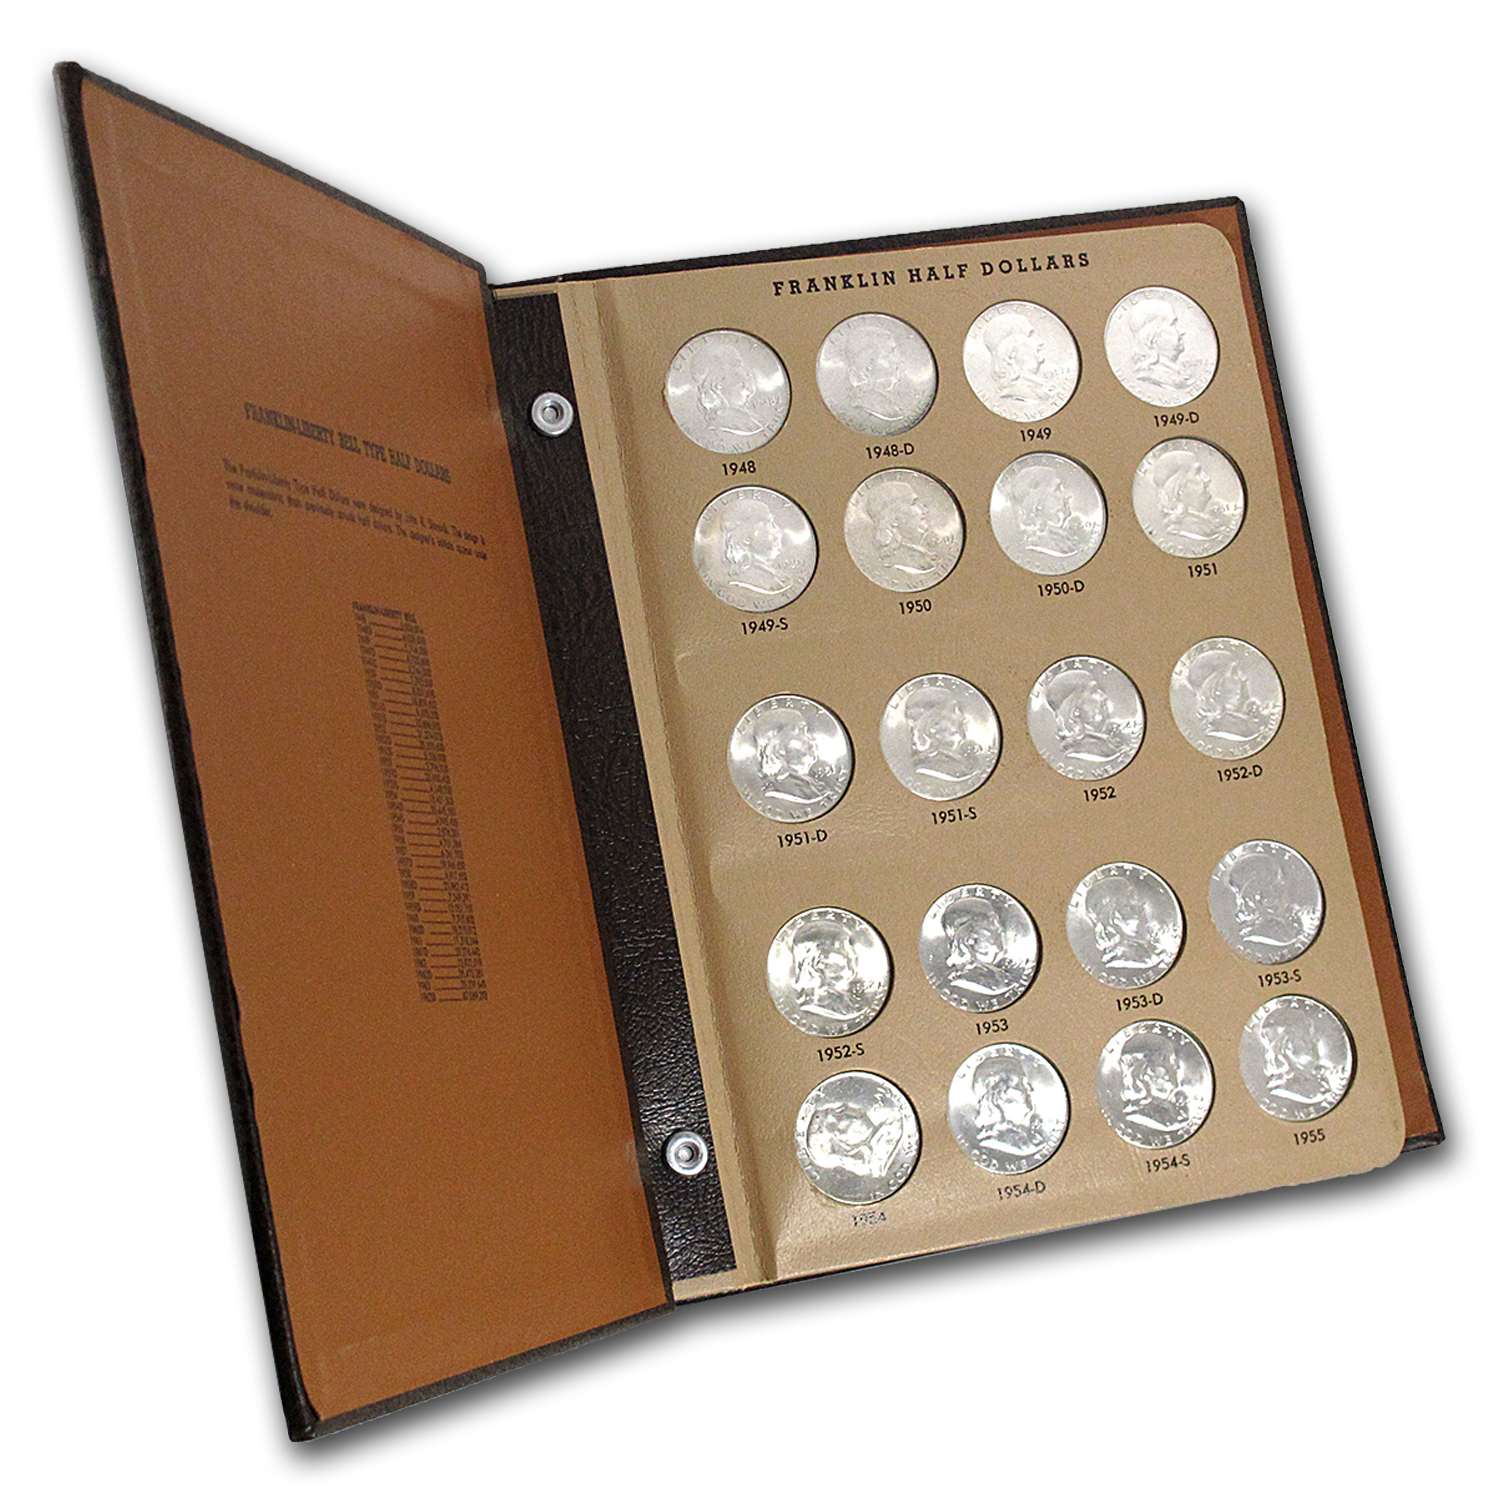 1948-1963 Franklin Half Dollar Set BU (In Dansco Album)